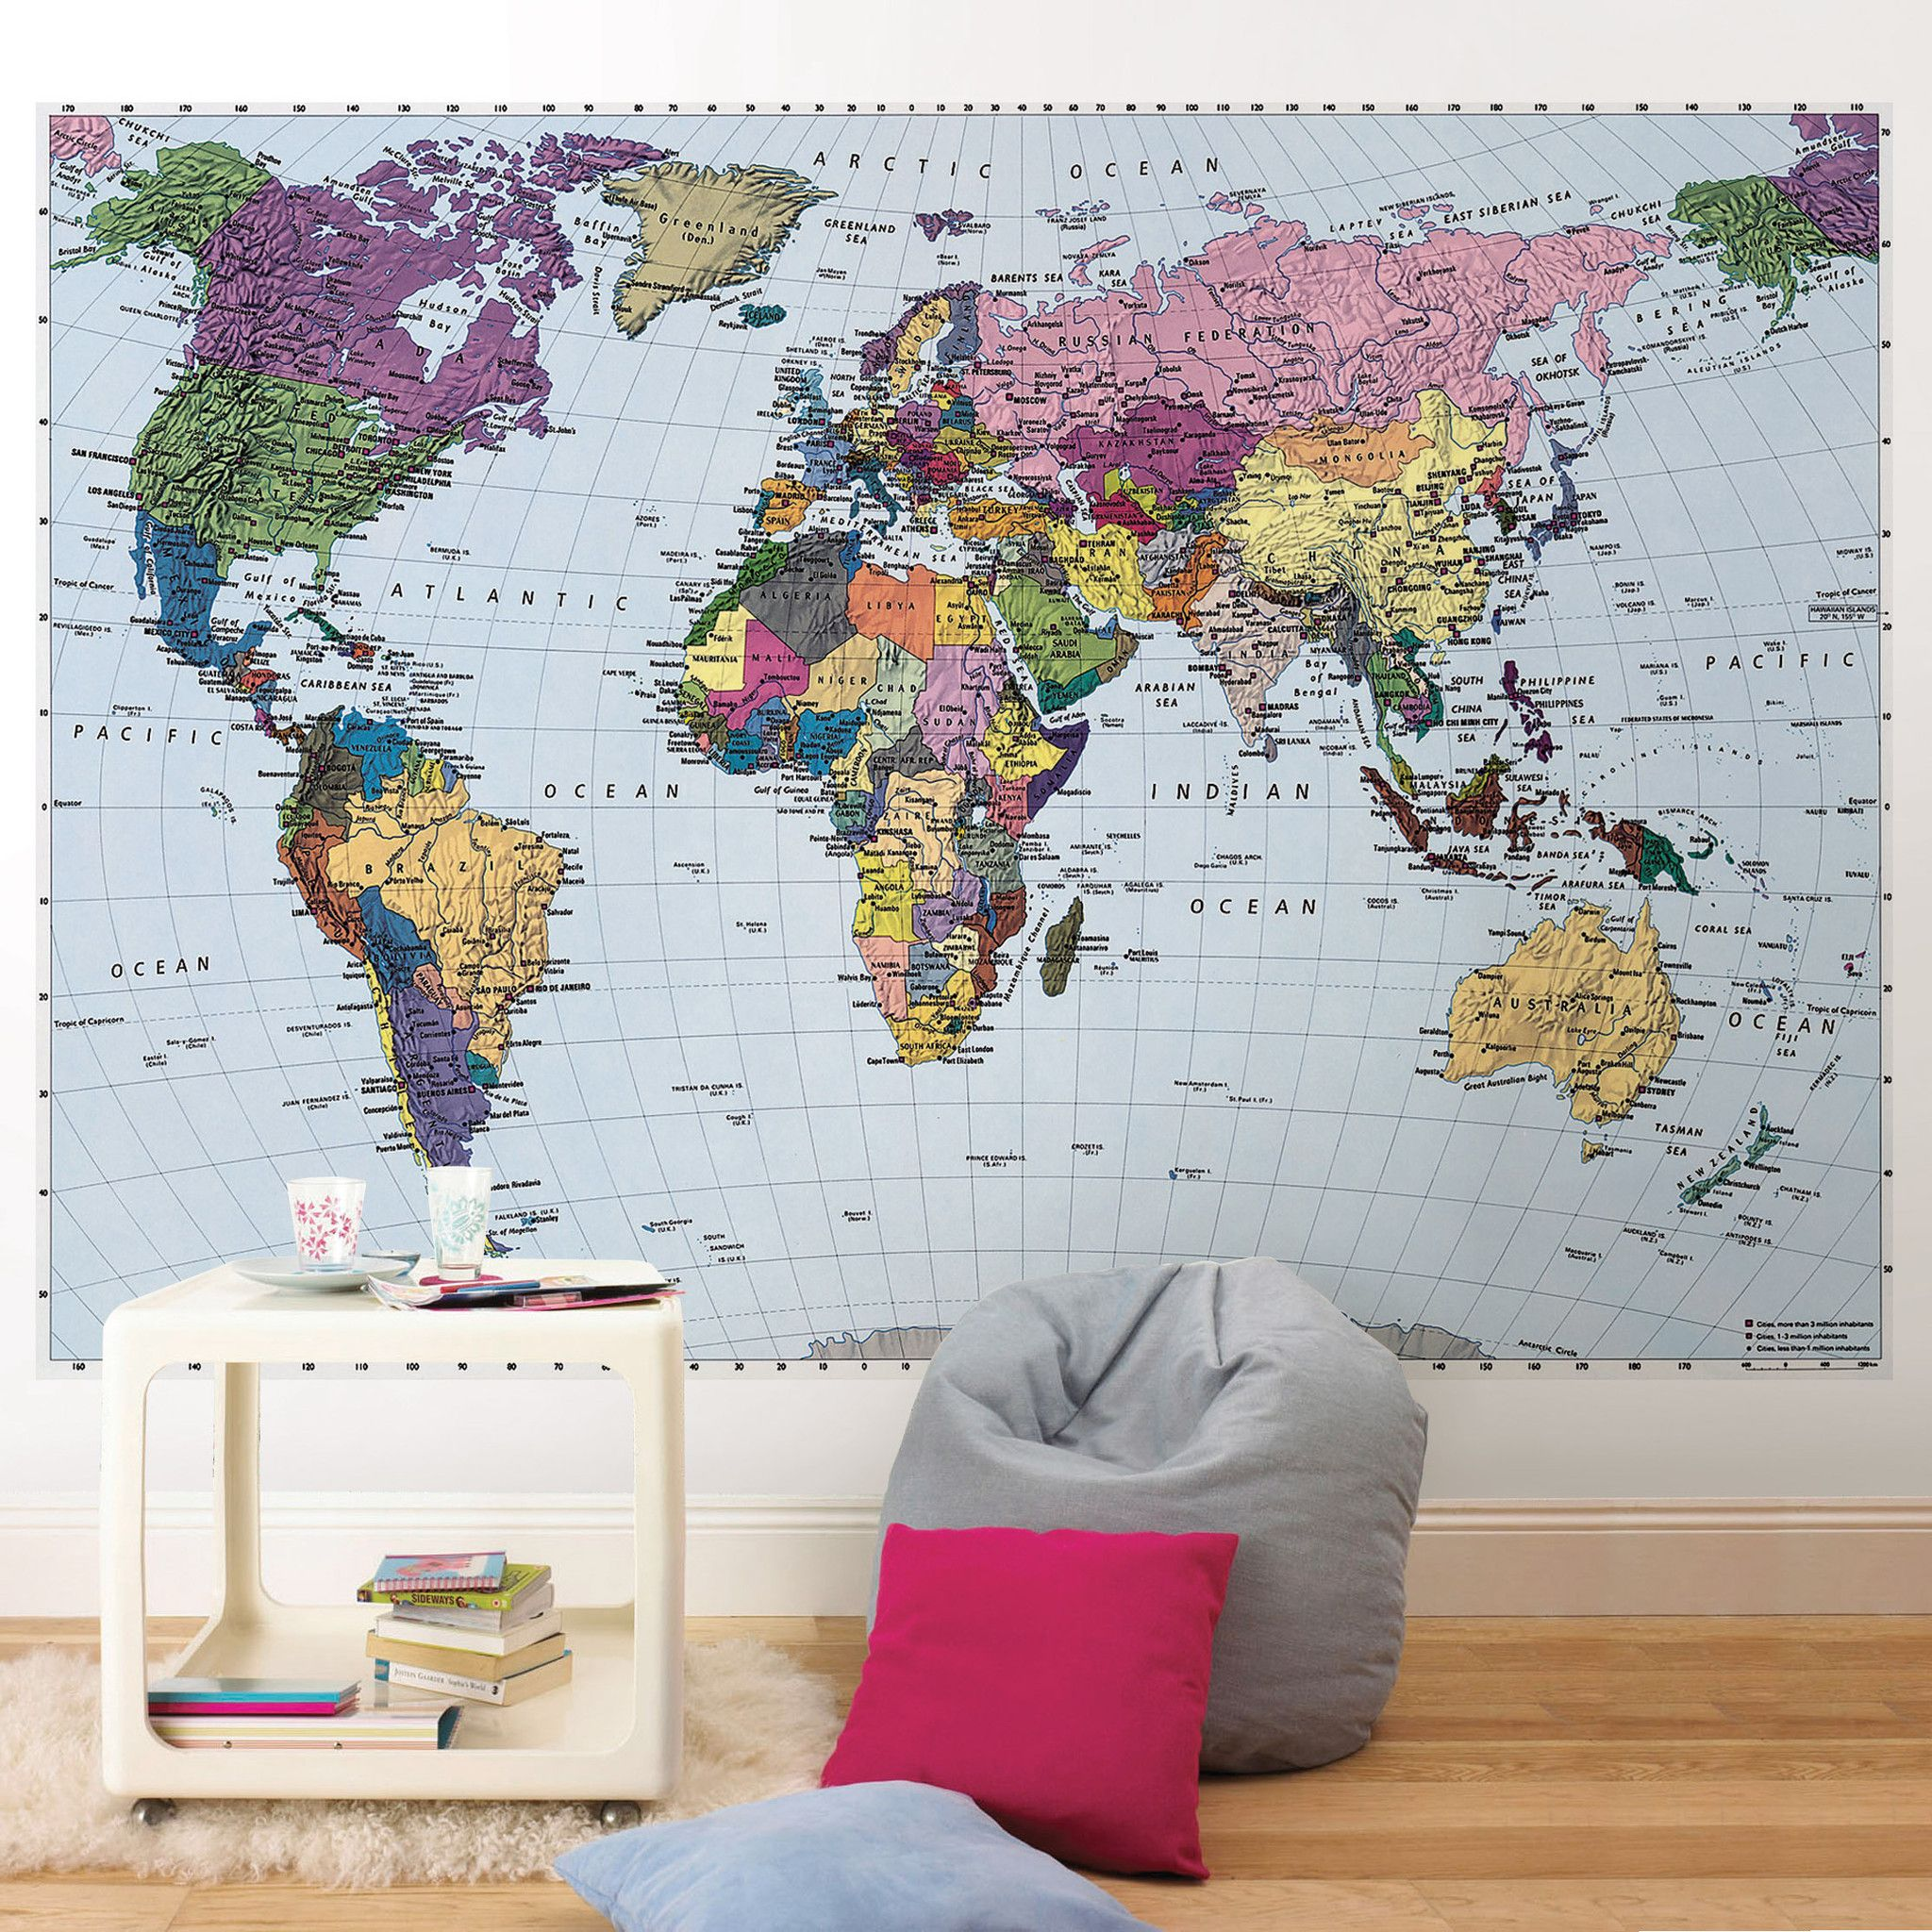 Colorful world map wall mural wallpaper wall murals wallpaper and colorful world map wall mural wallpaper gumiabroncs